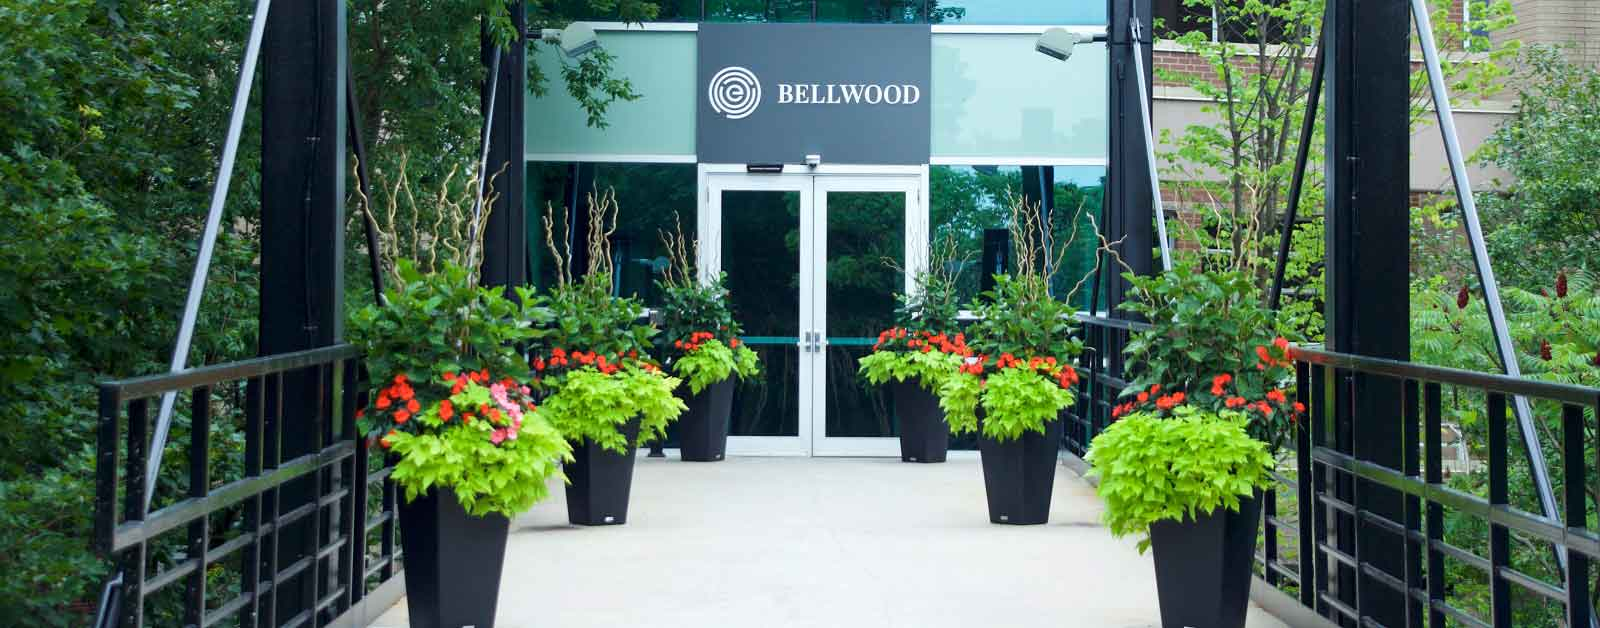 Bellwood Alcohol & Drug Addiction Services Toronto Rehab